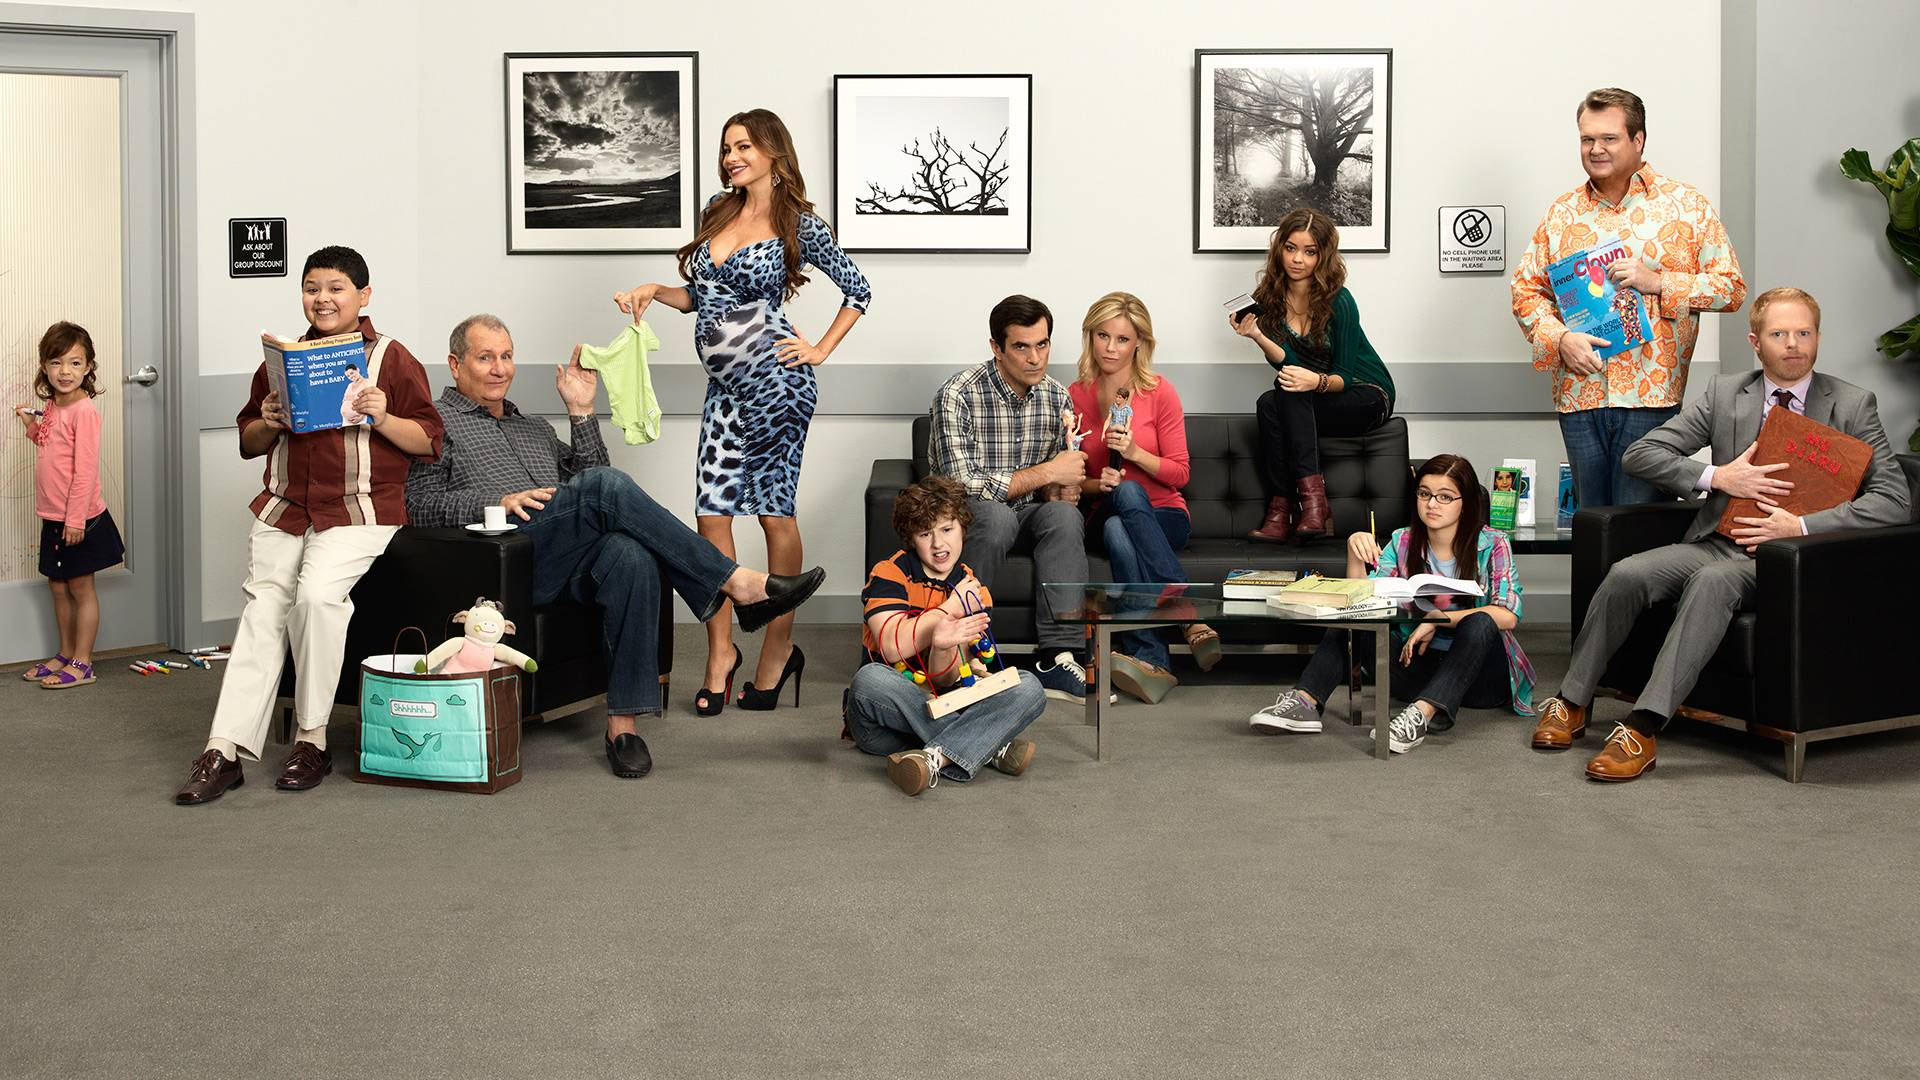 Modern family wallpaper 20 for Modern family wallpaper